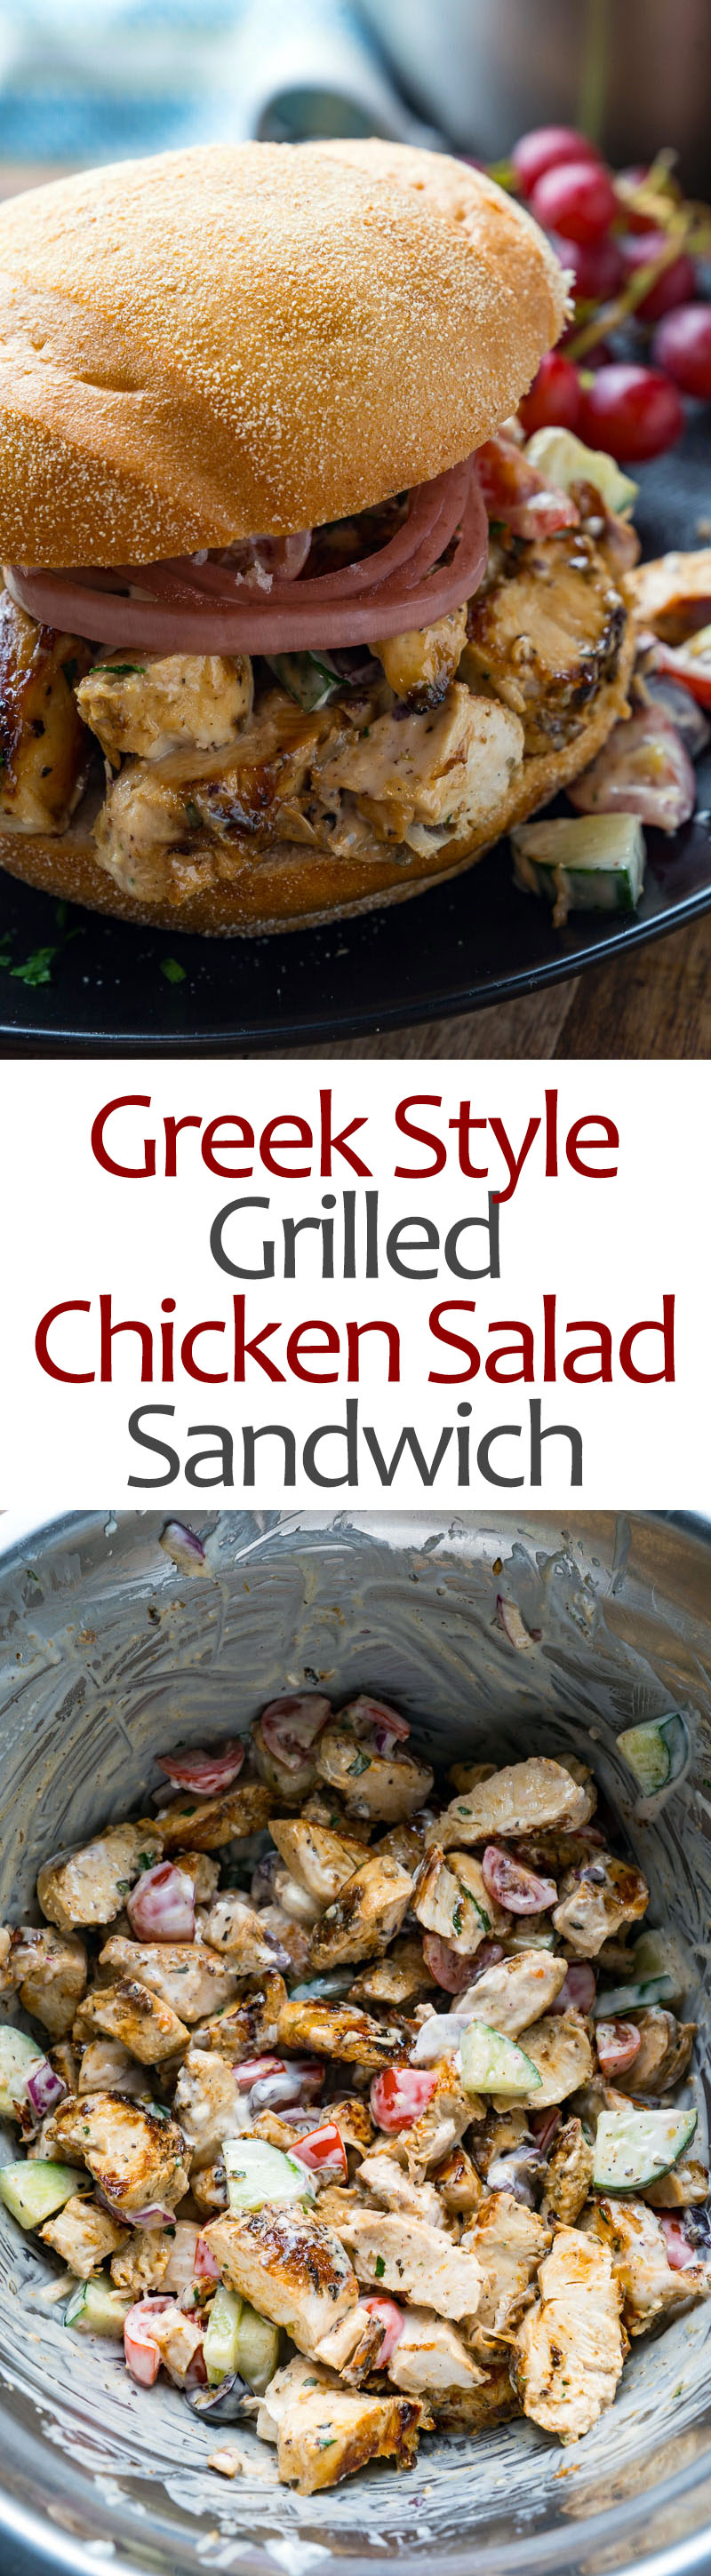 Greek Style Grilled Chicken Salad Sandwich